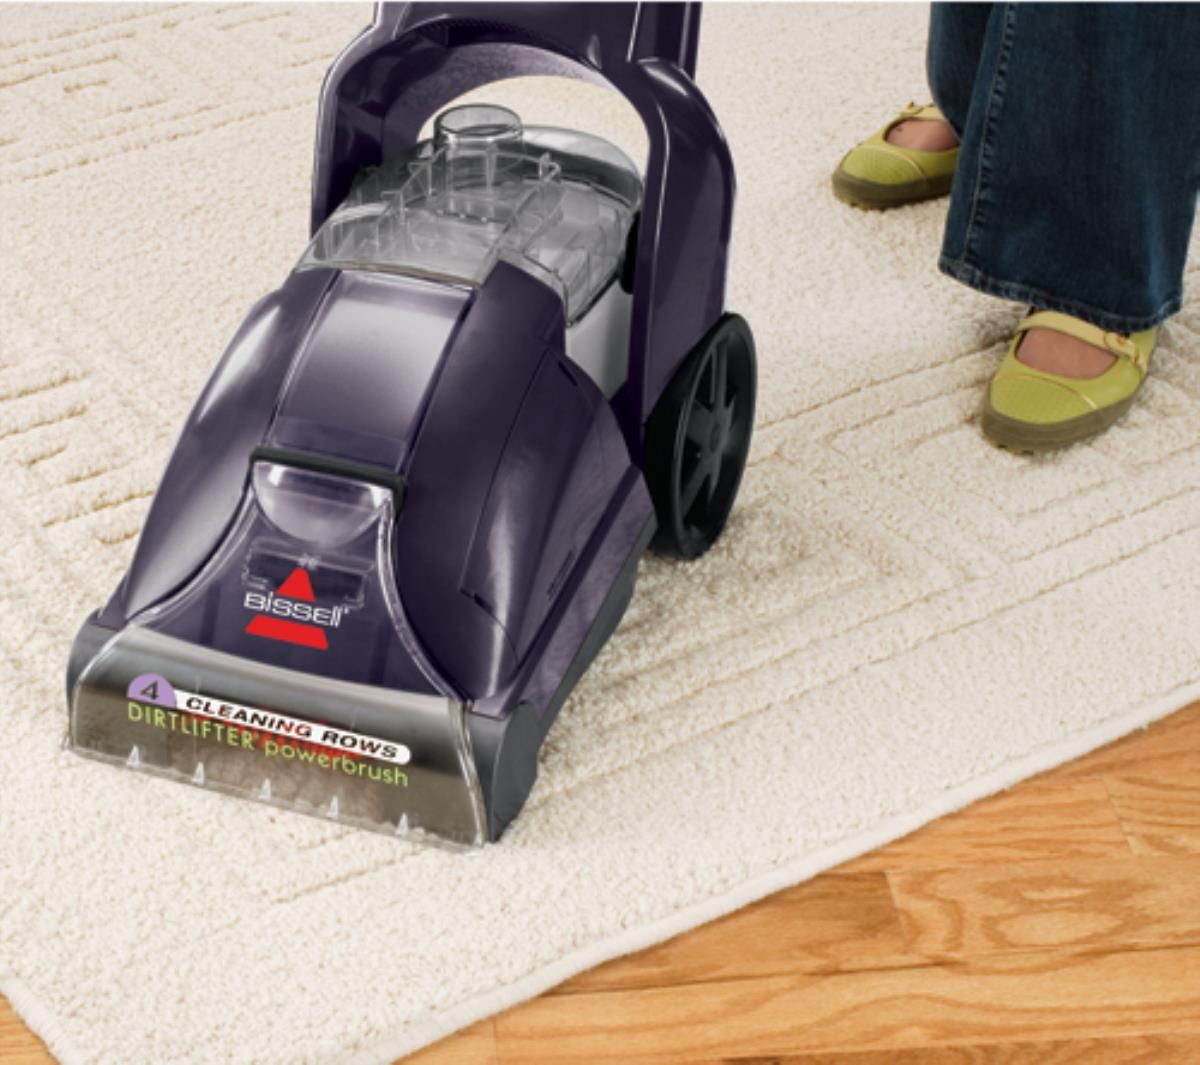 the bissell powerlifter powerbrush carpet cleaner can deep clean carpet and area rugs